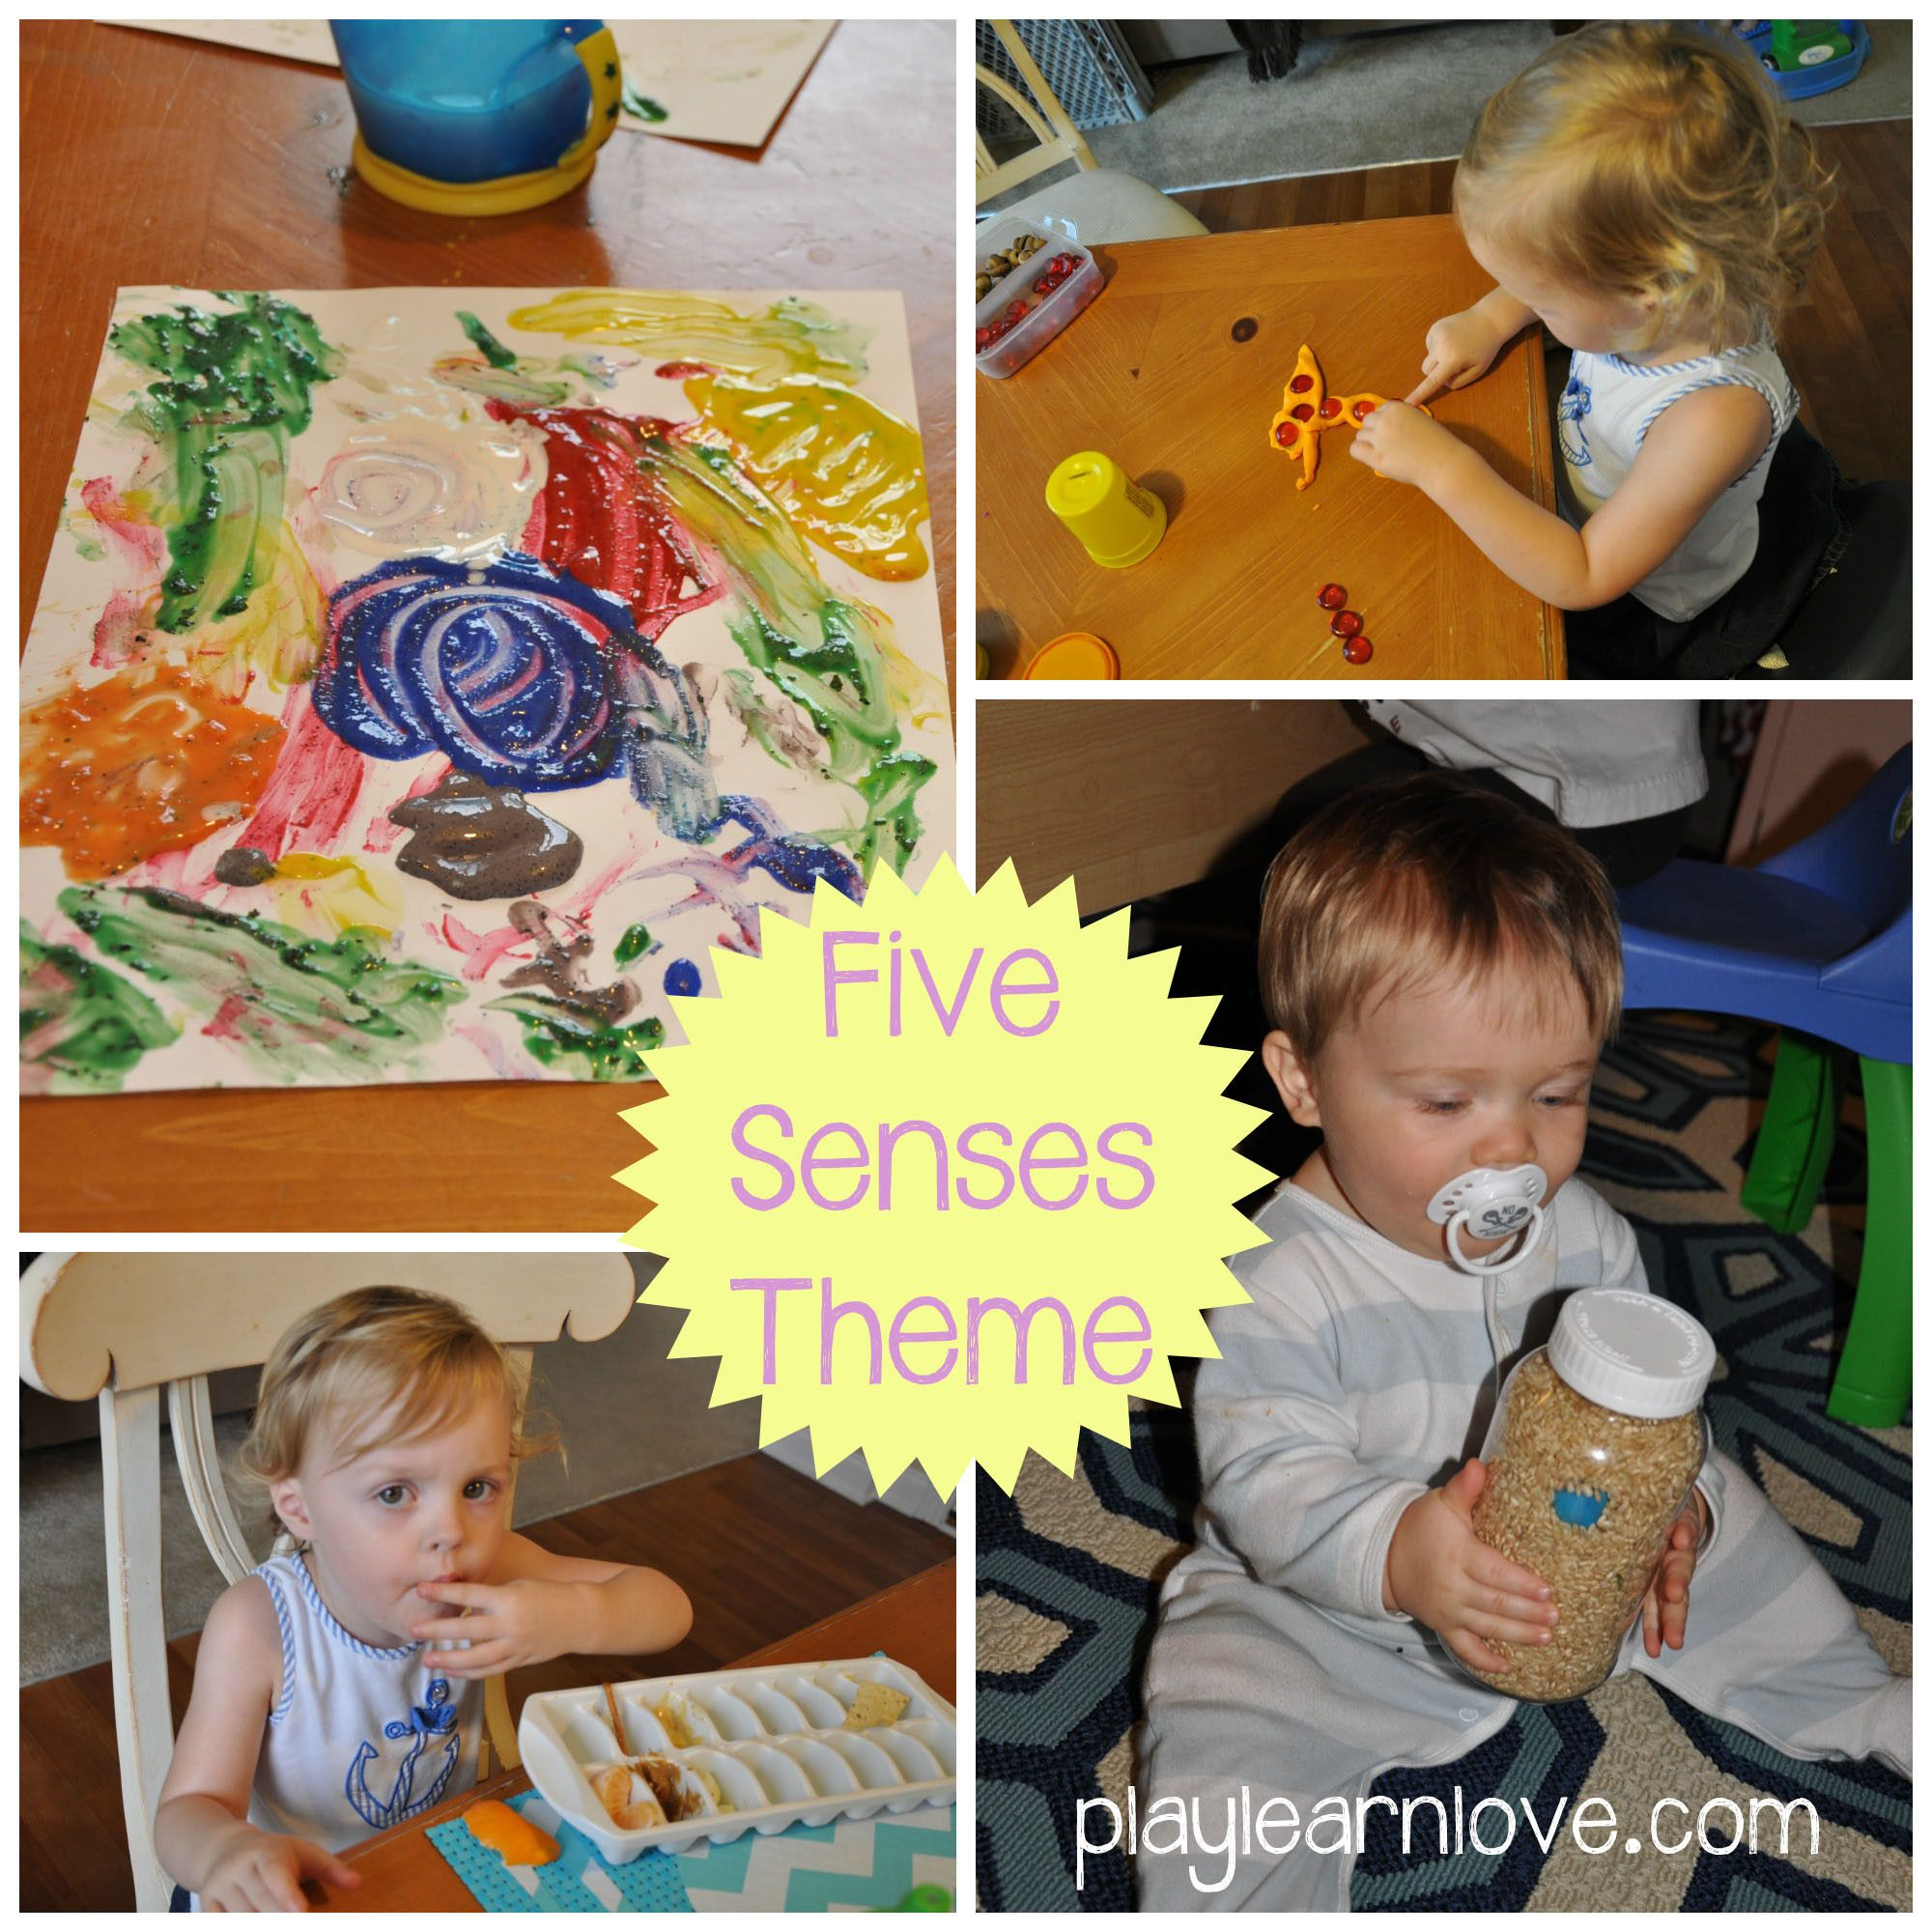 Five Senses Preschool Theme